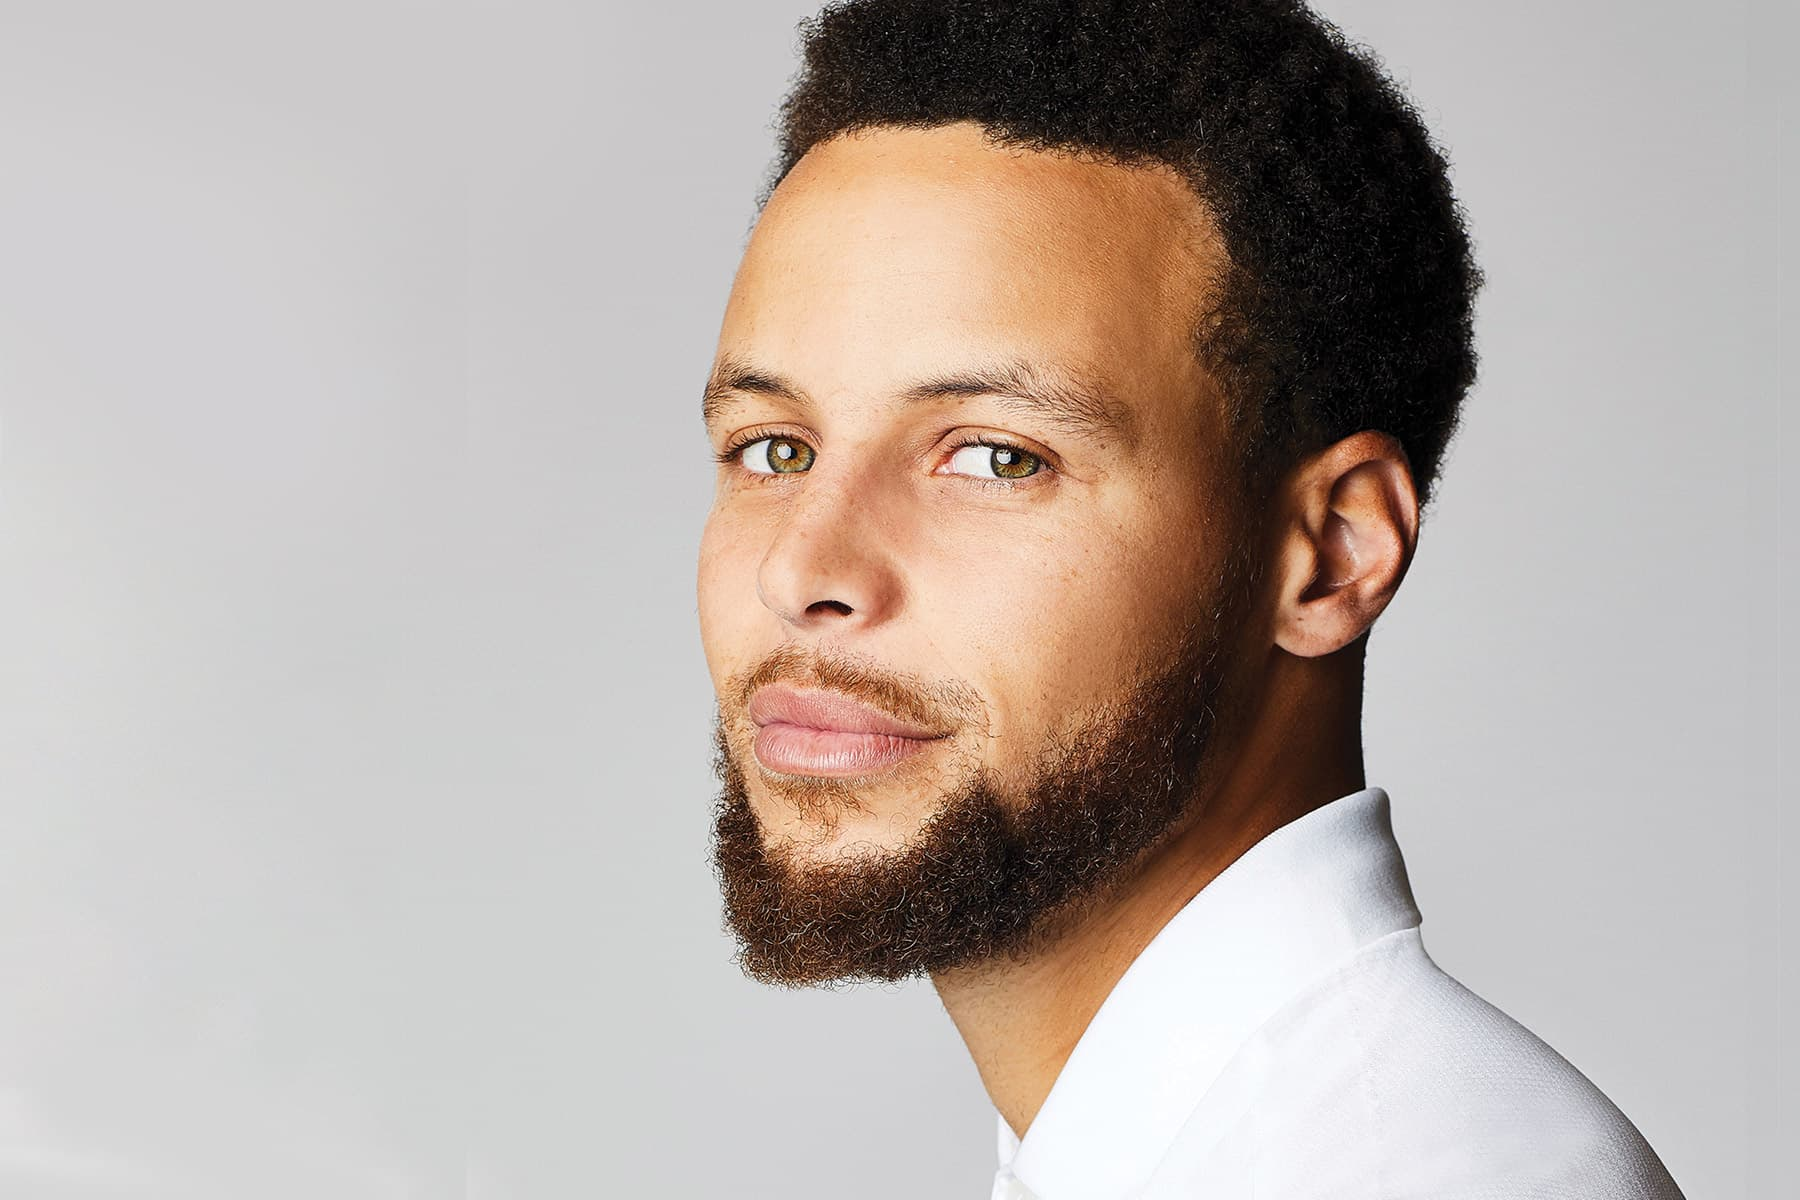 Steph Curry Turns Focus To Kids During The Coronavirus Pandemic